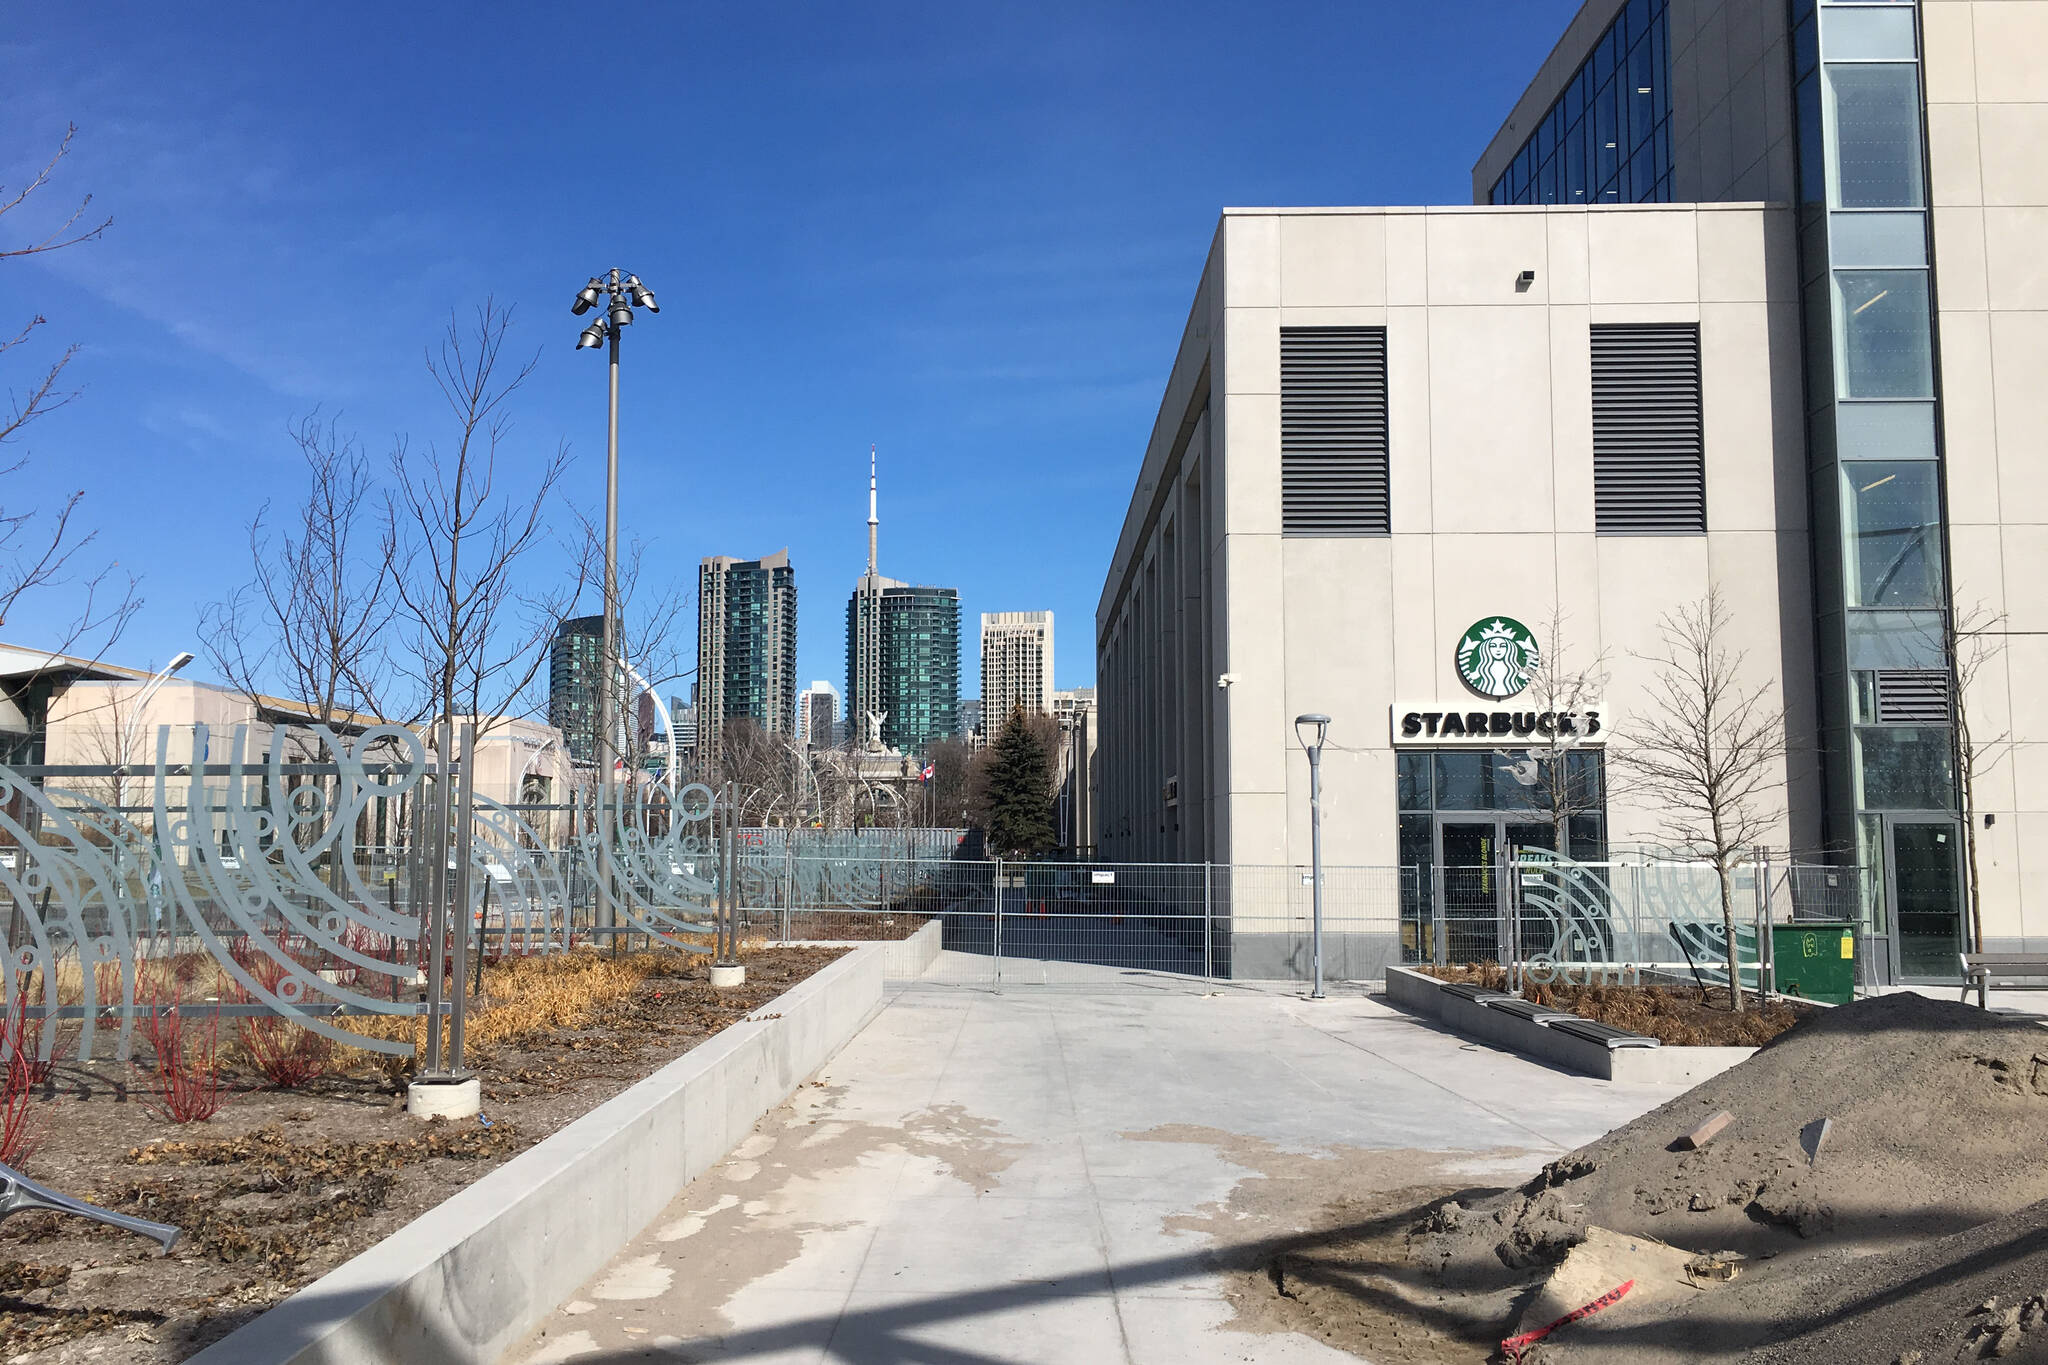 Starbucks Exhibition Place